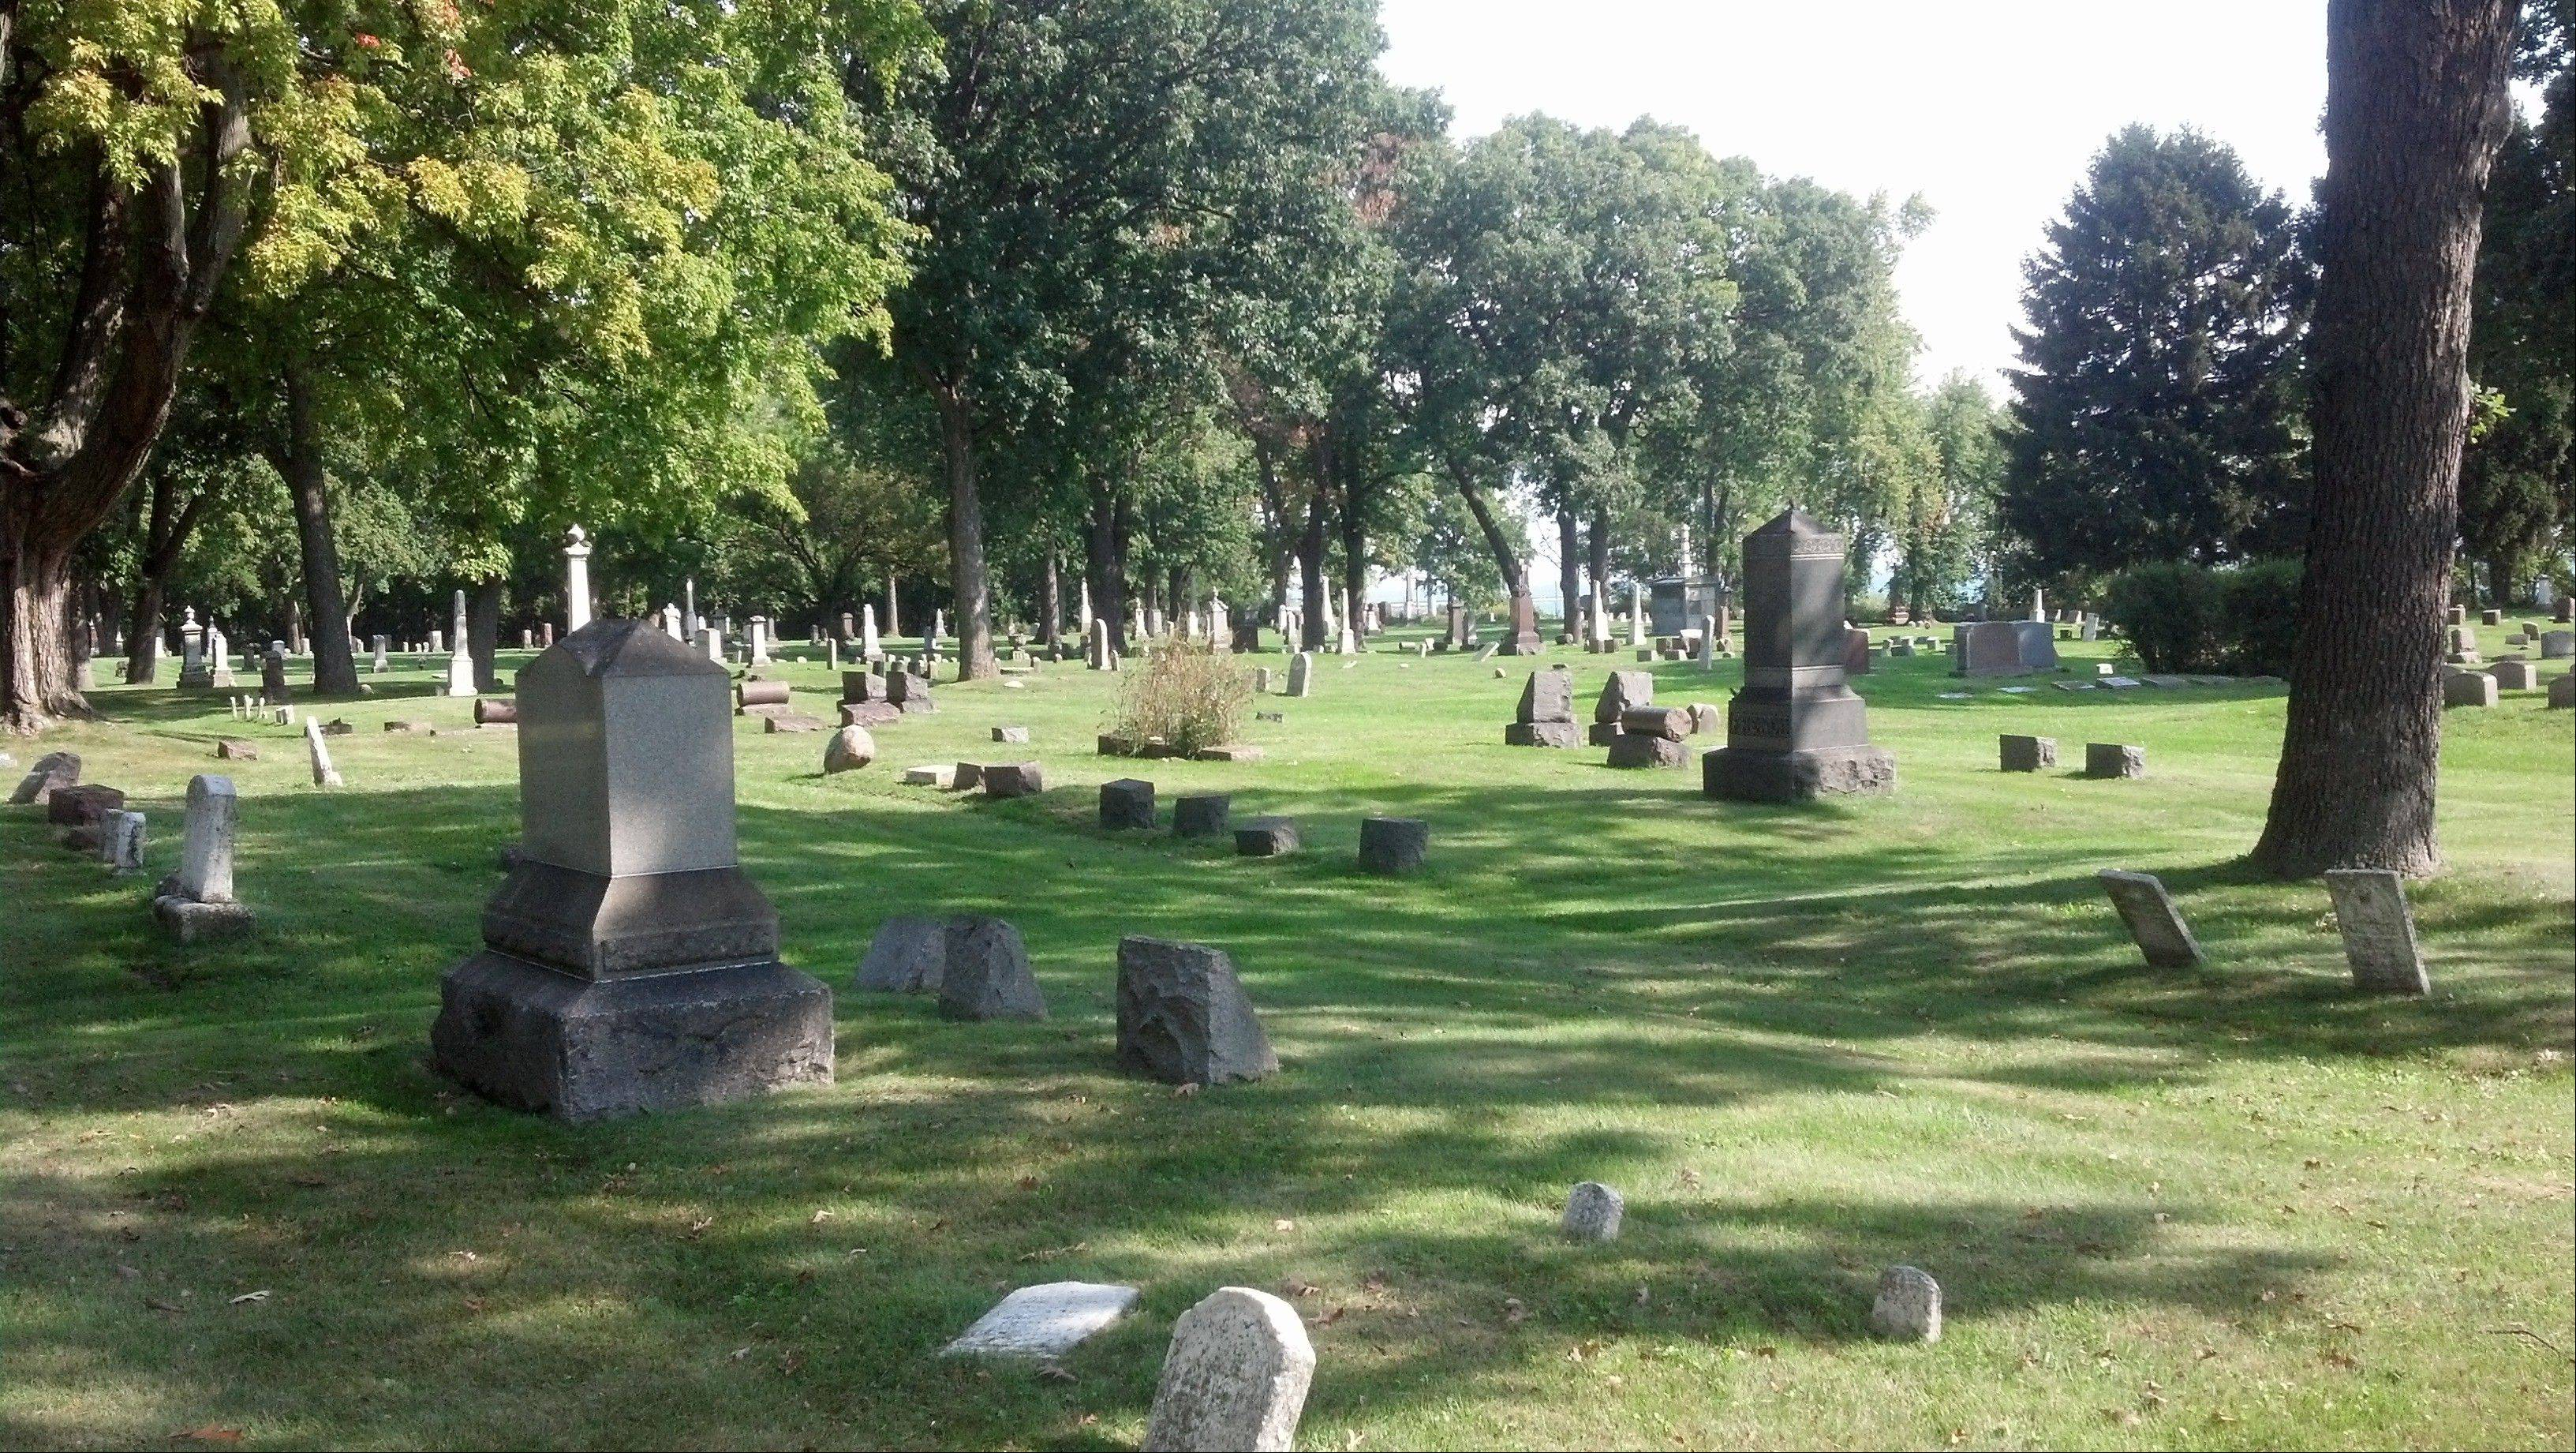 Oakwood Cemetery is the site of the Waukegan Park District's annual Cemetery Walk. This year's walk will be from noon to 3:30 p.m. Saturday, Sept. 21, with buses leaving from Lilac Cottage in Bowen Park, 1911 N. Sheridan Road, Waukegan.